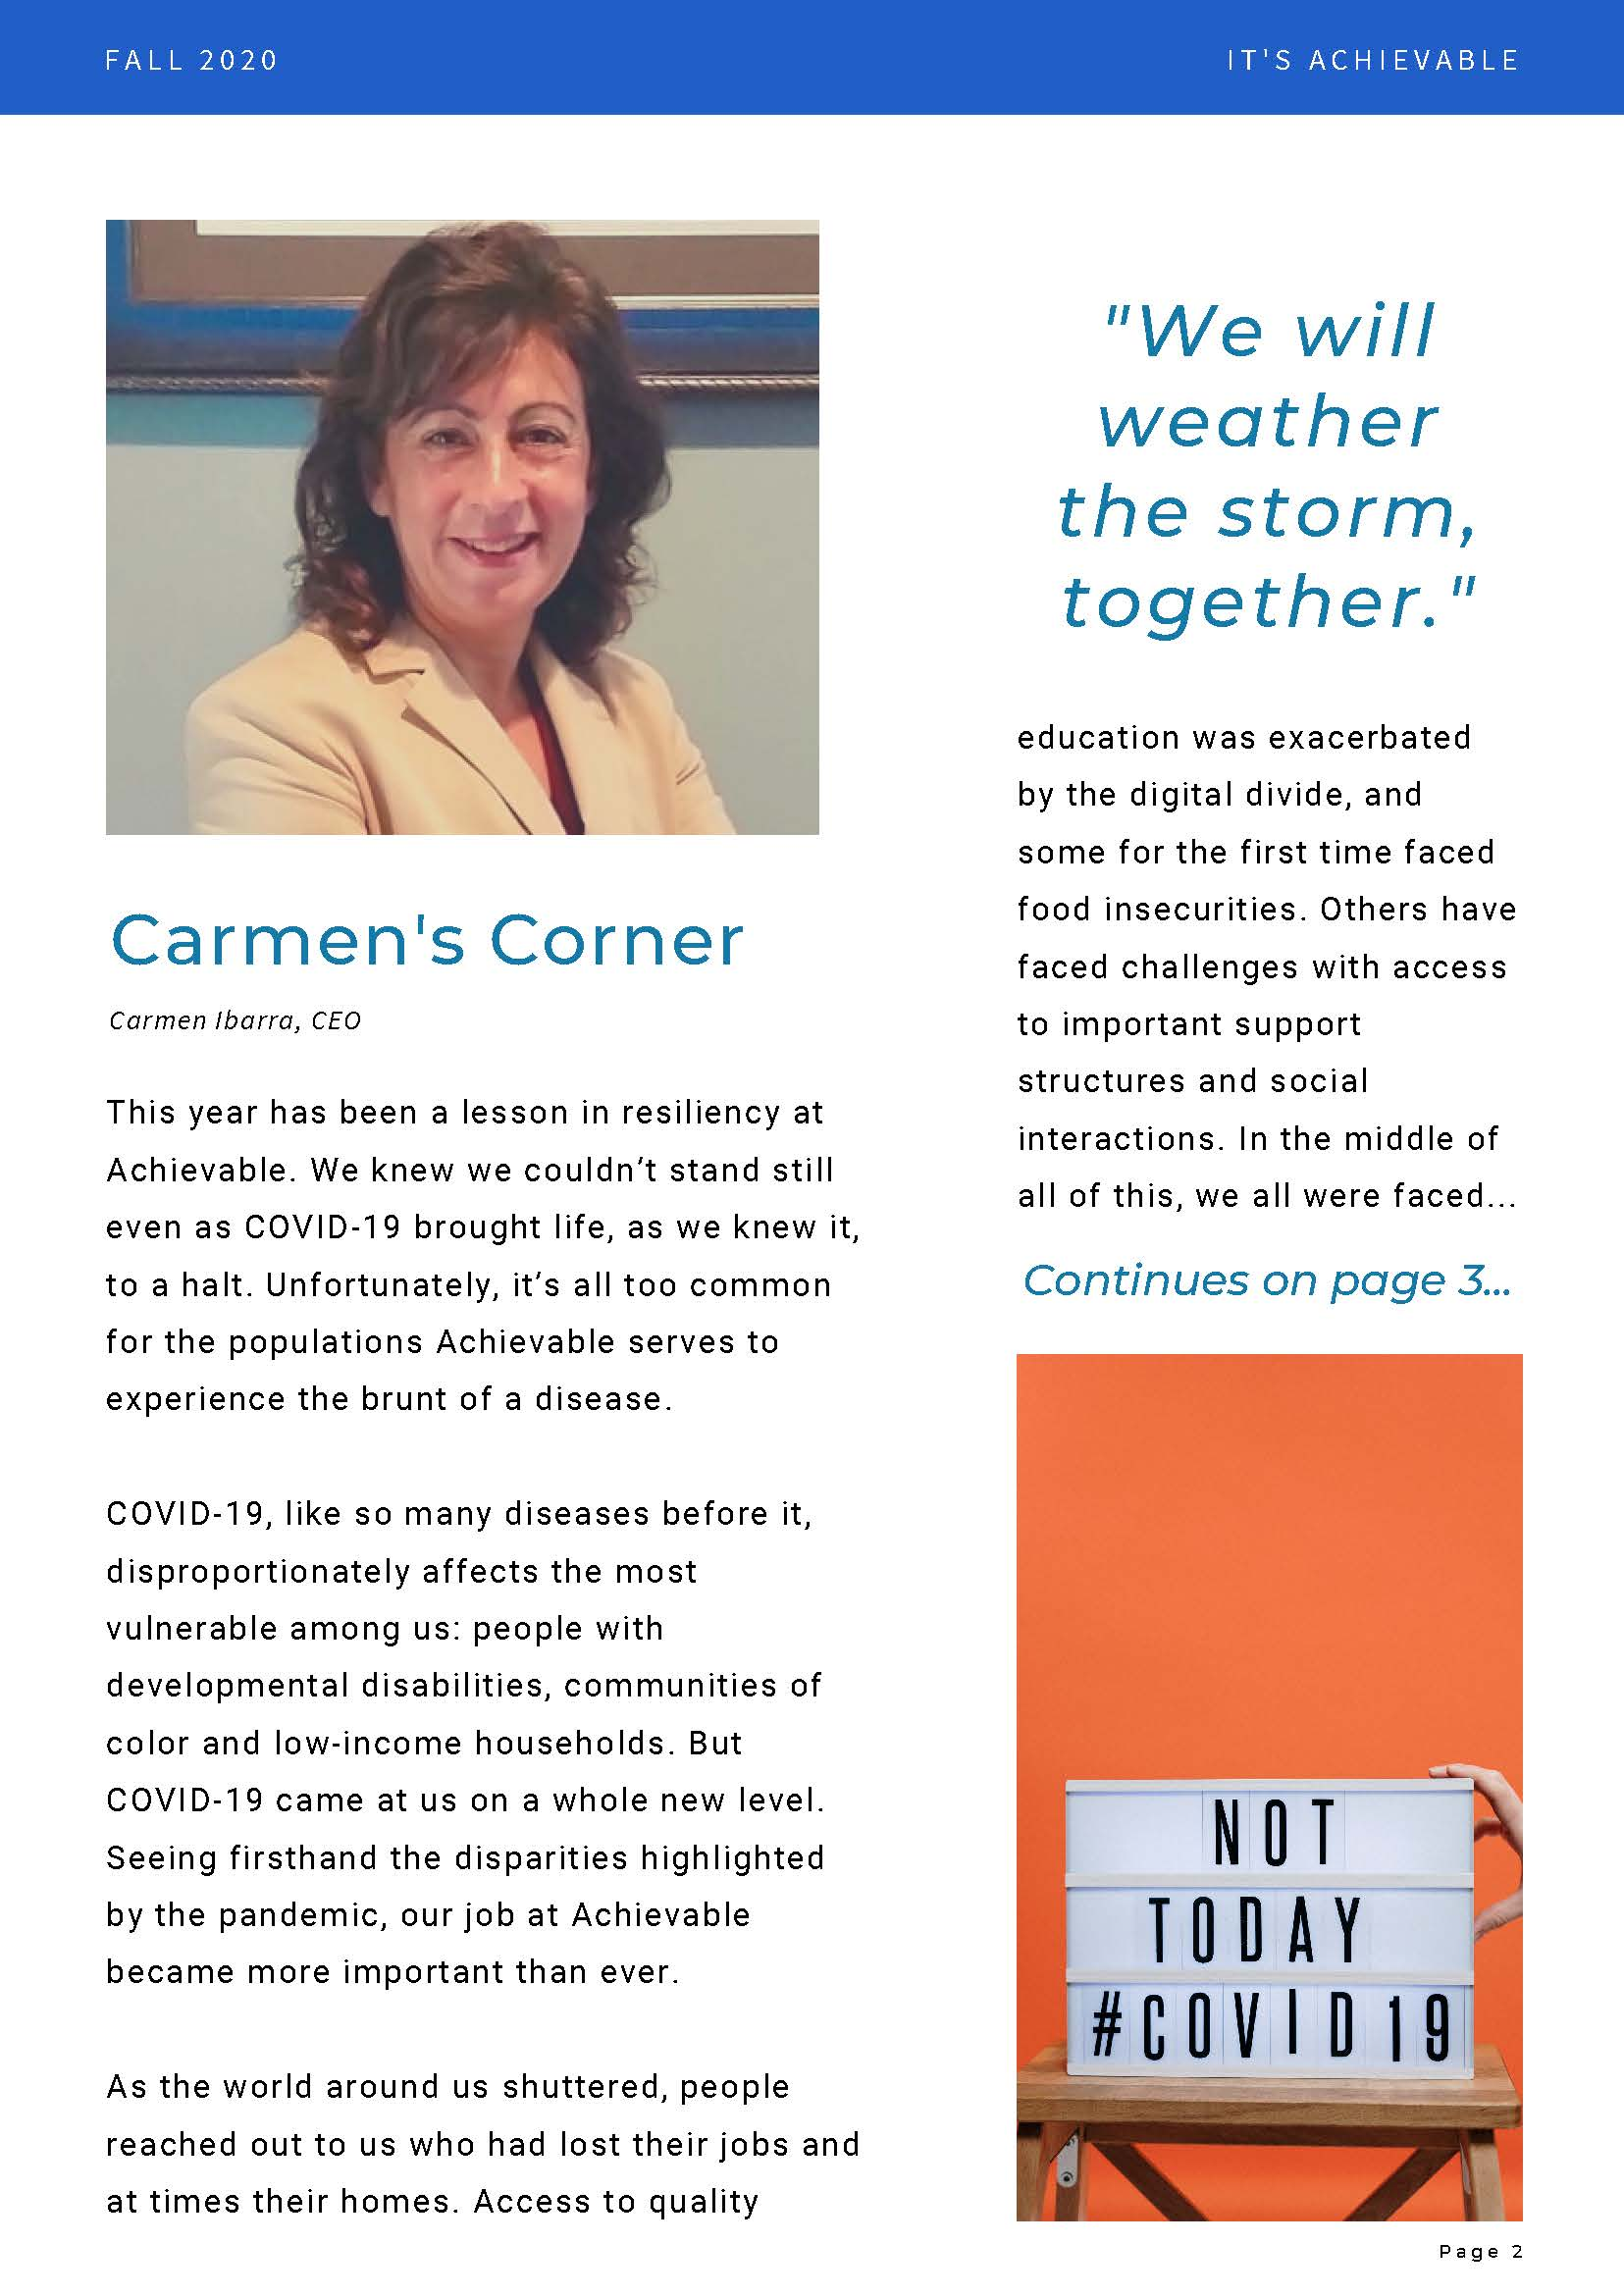 Copy of Achievable Fall 2020 Newsletter FINAL (1)_Page_2